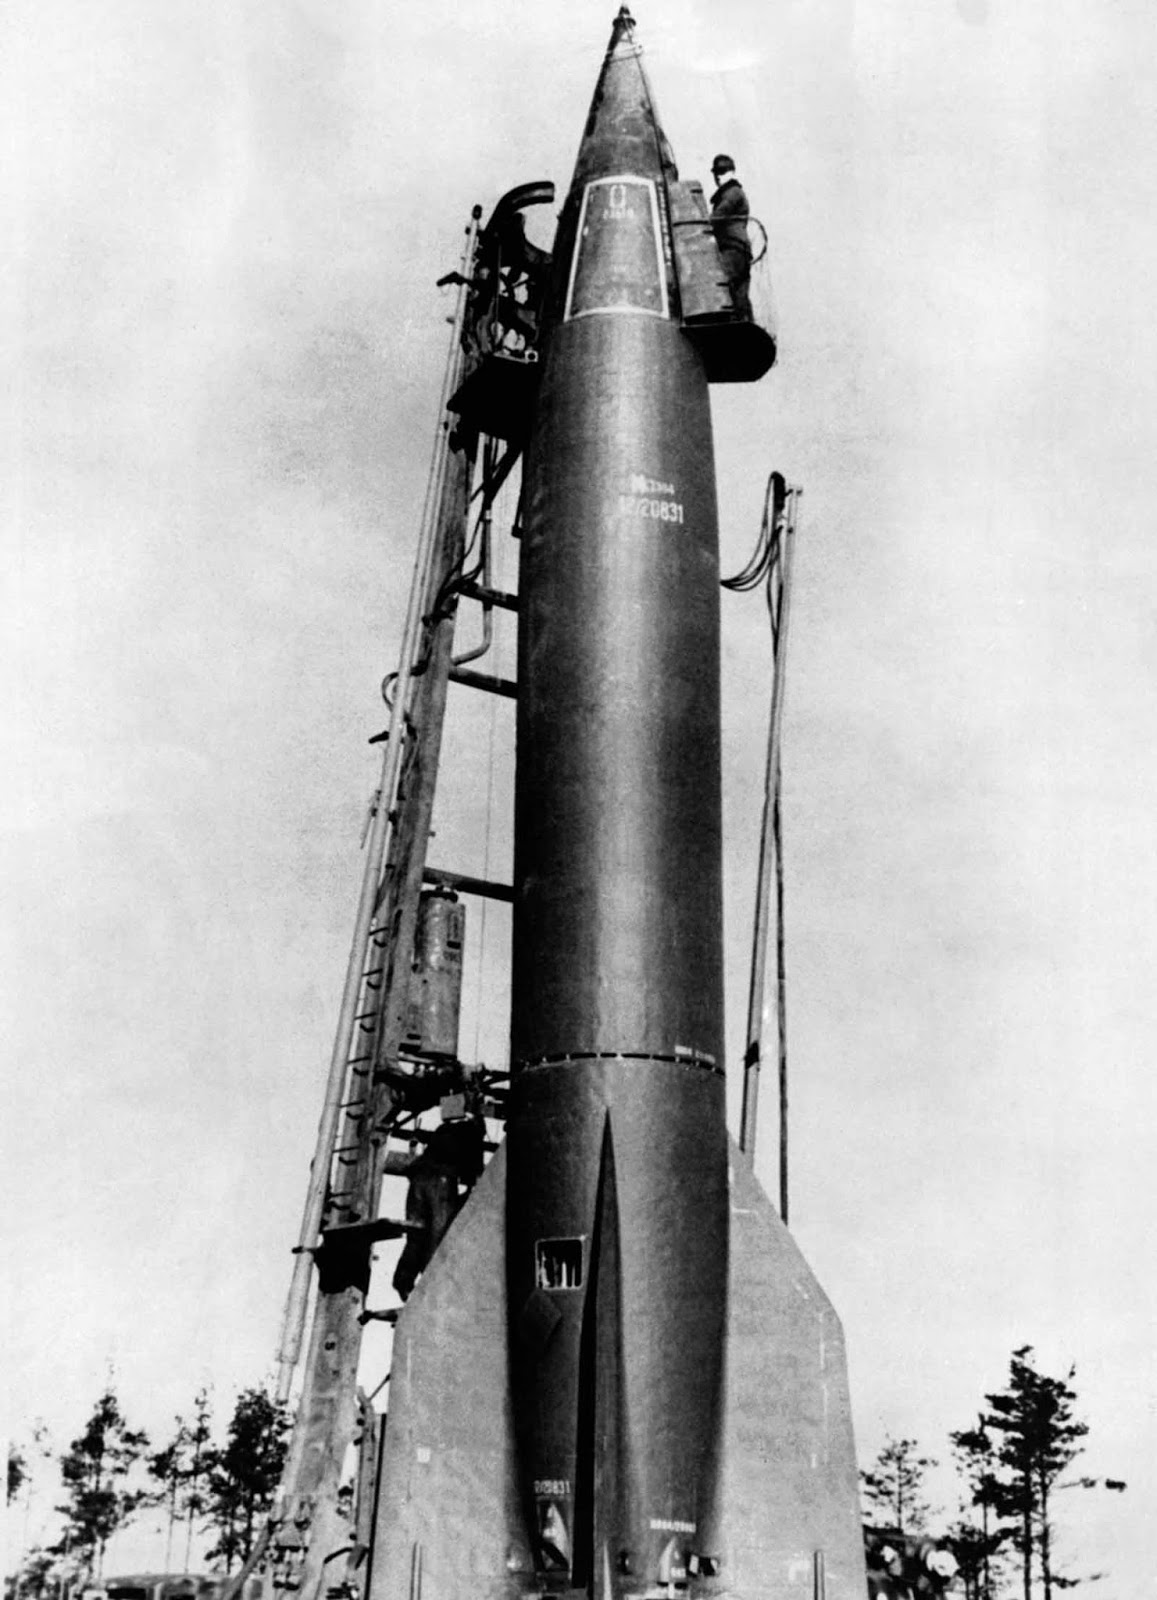 A V-2 rocket is being prepared for launch. 1940.